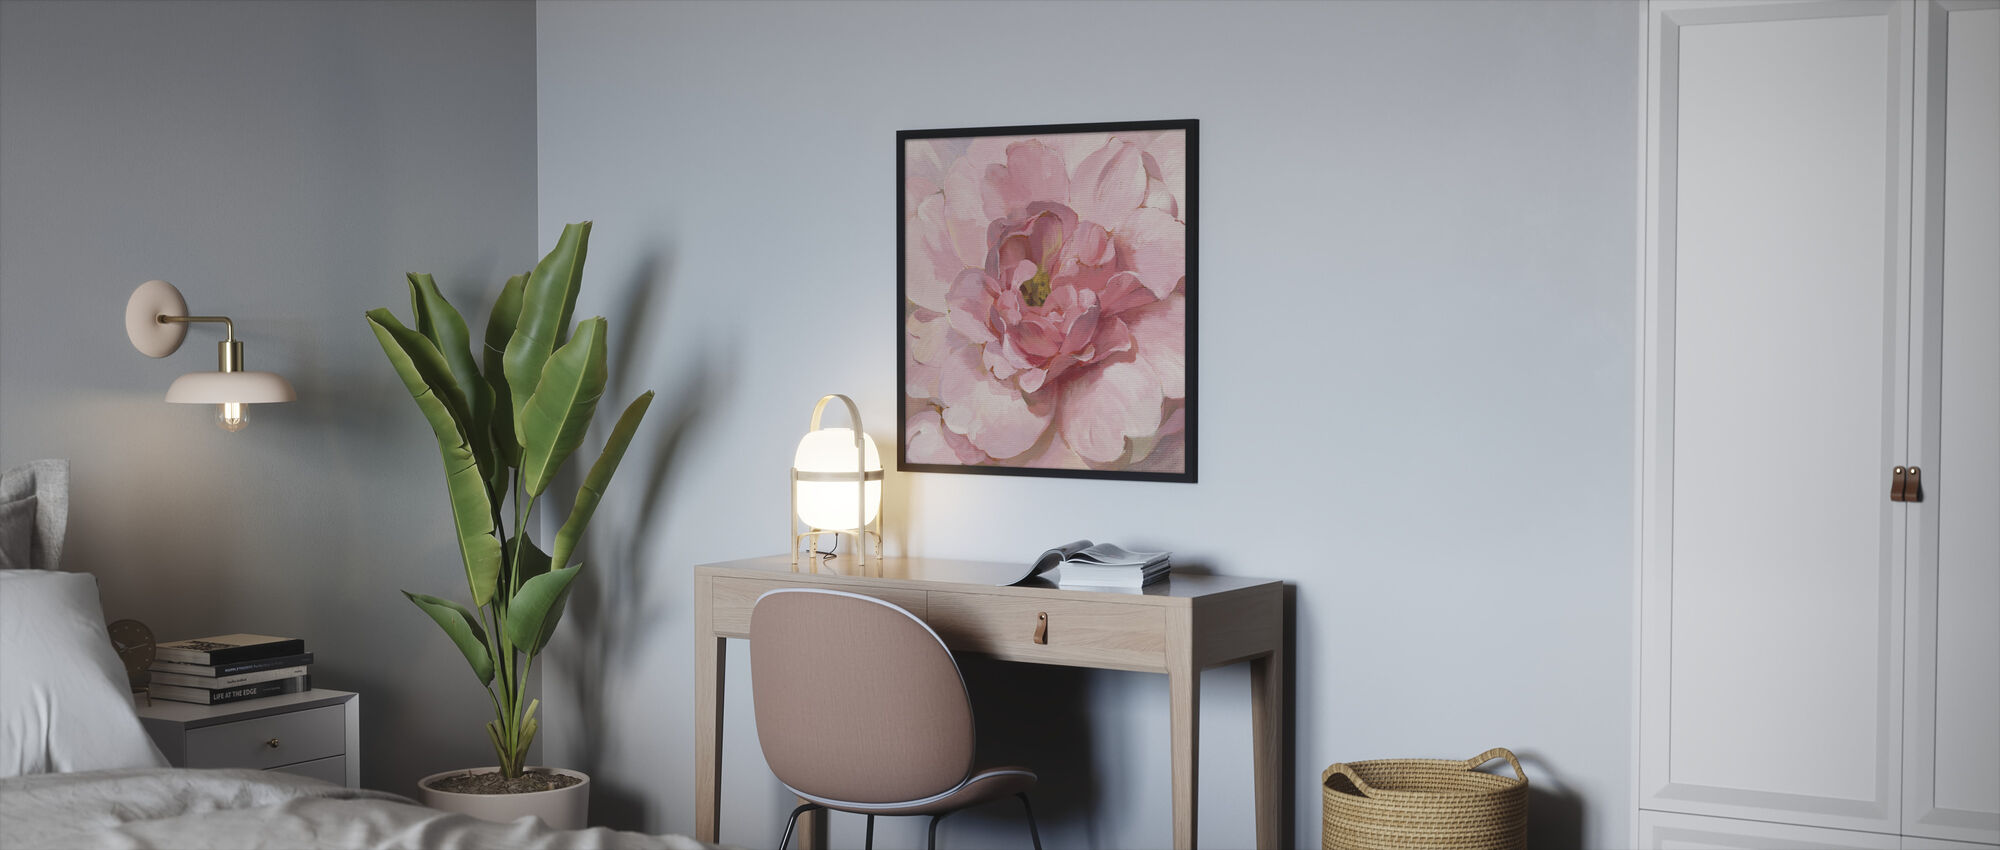 Blushing Peony - Framed print - Bedroom